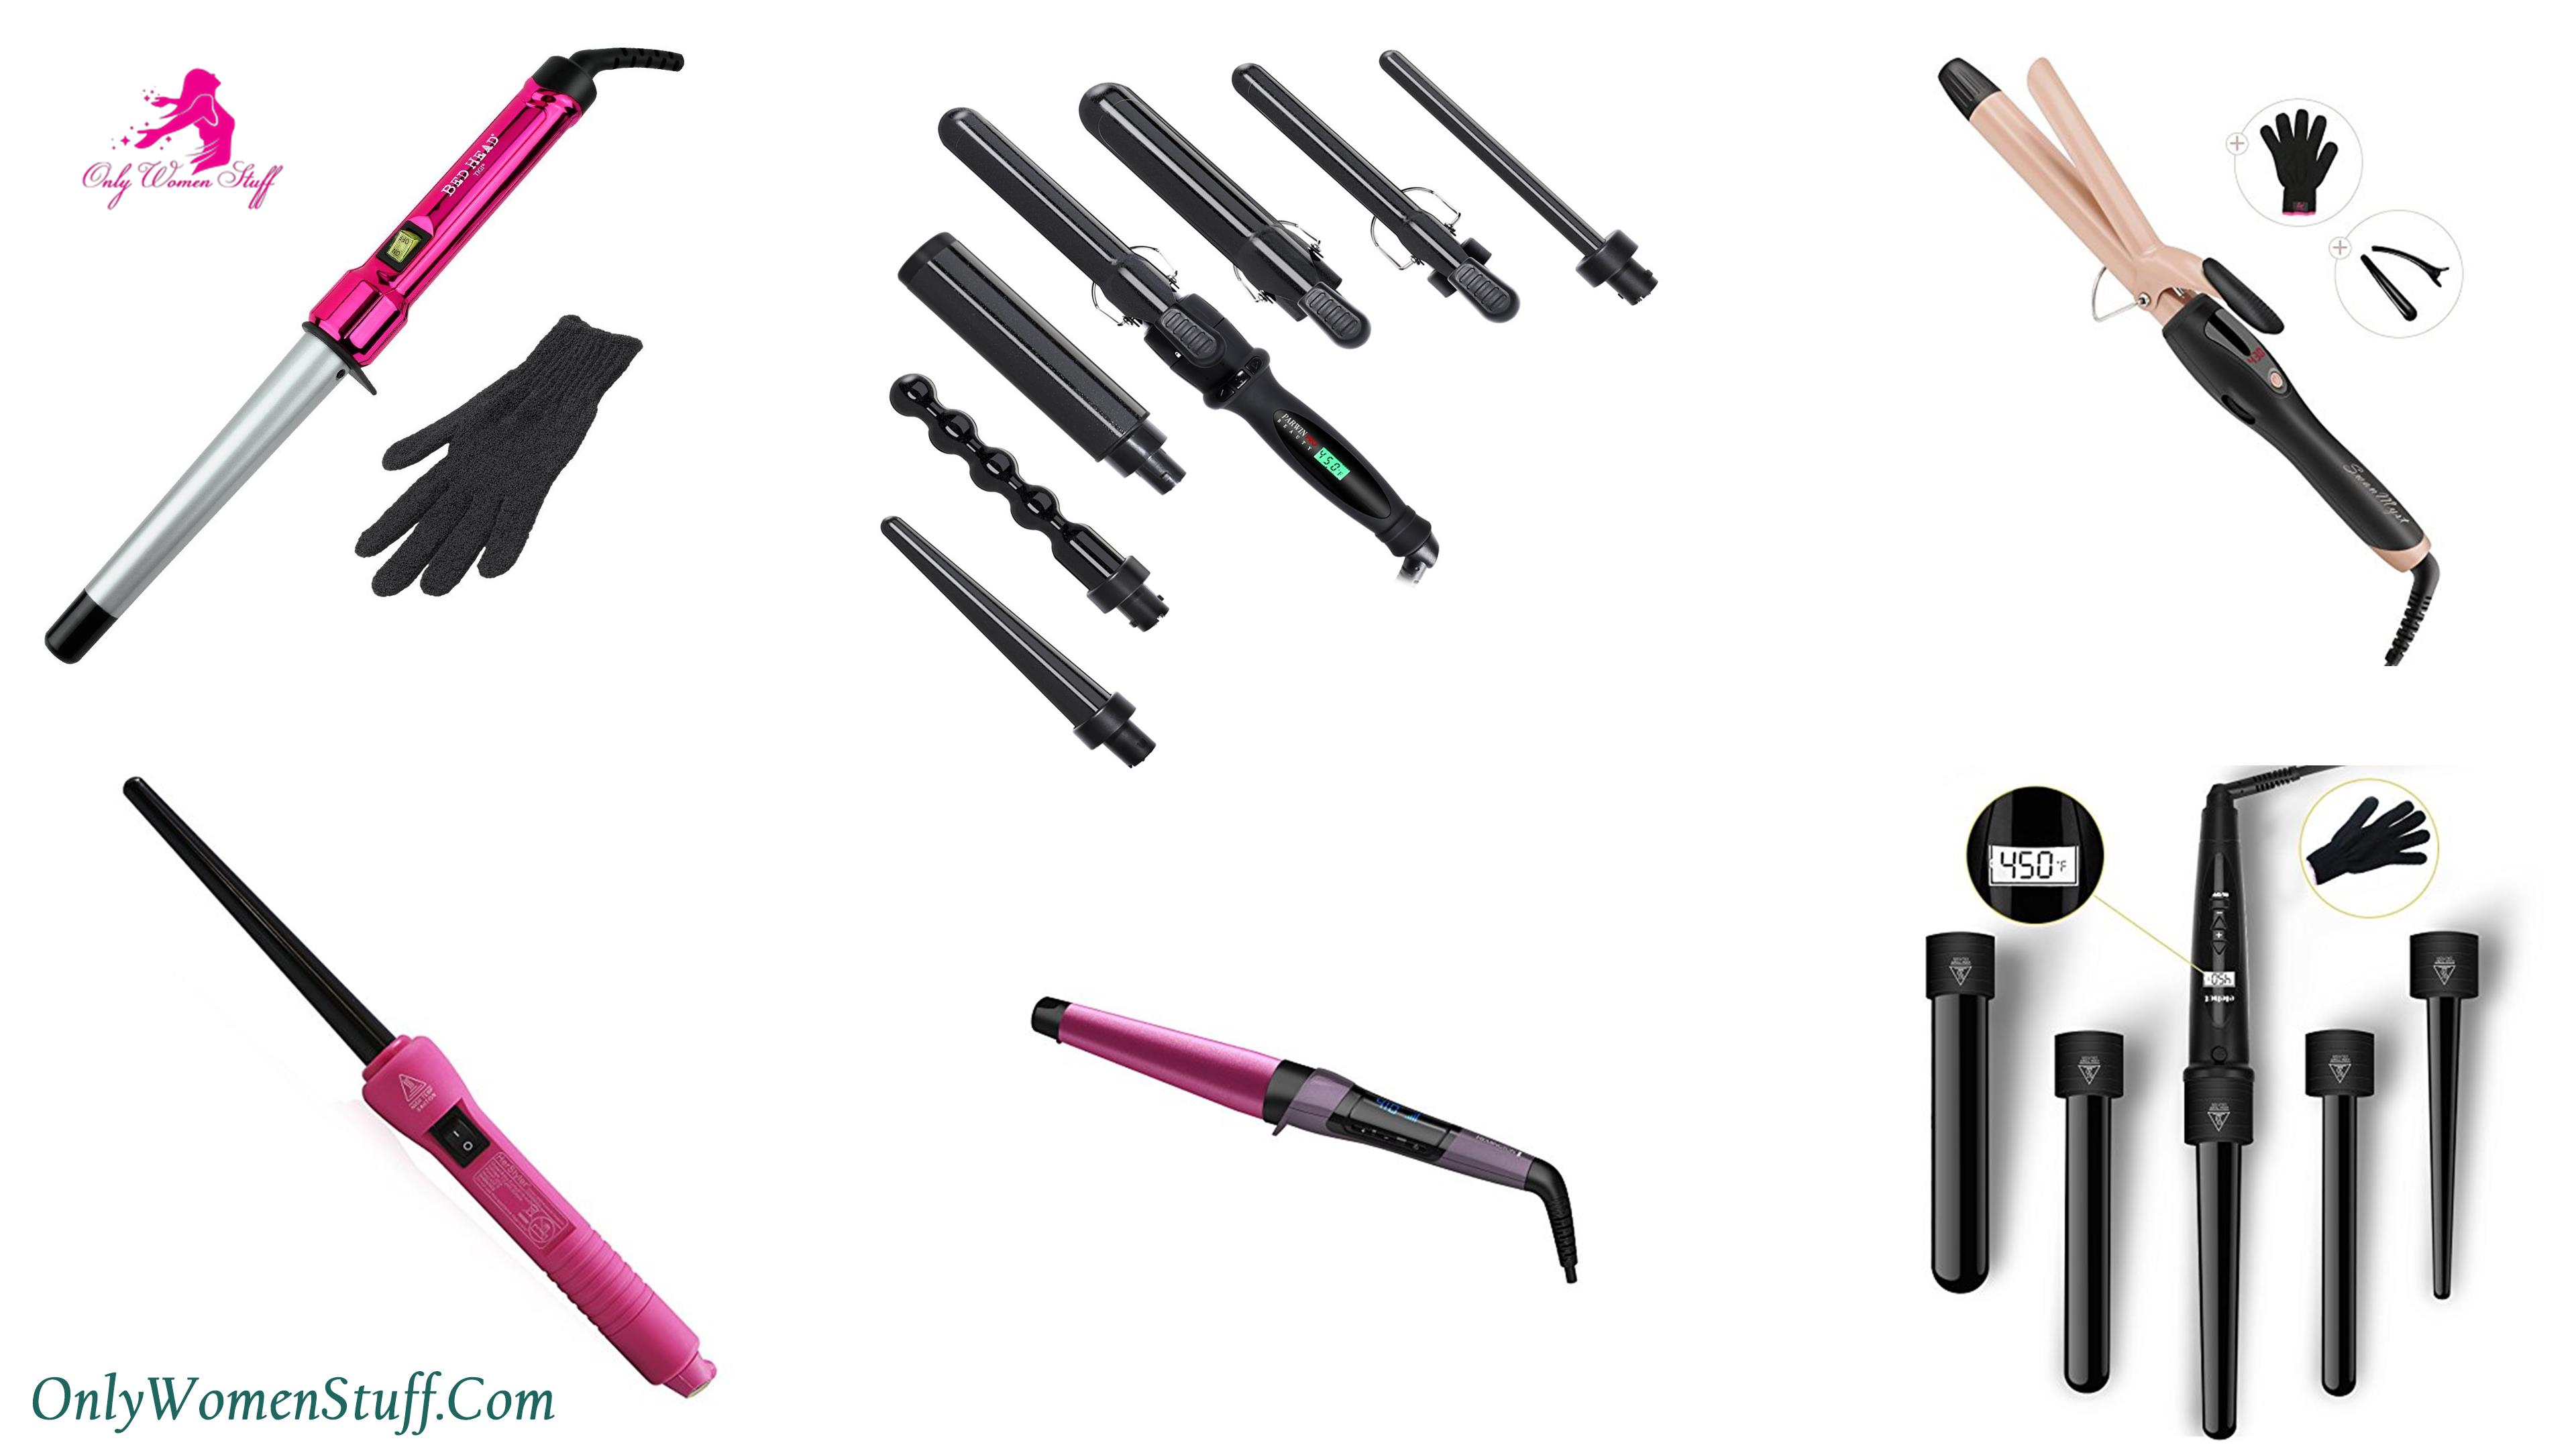 Best curling wand, best curling wand for thick hair, best curling wand for beach waves, best curling wand for fine hair, best curling wand for medium hair, best curling wand for long hair